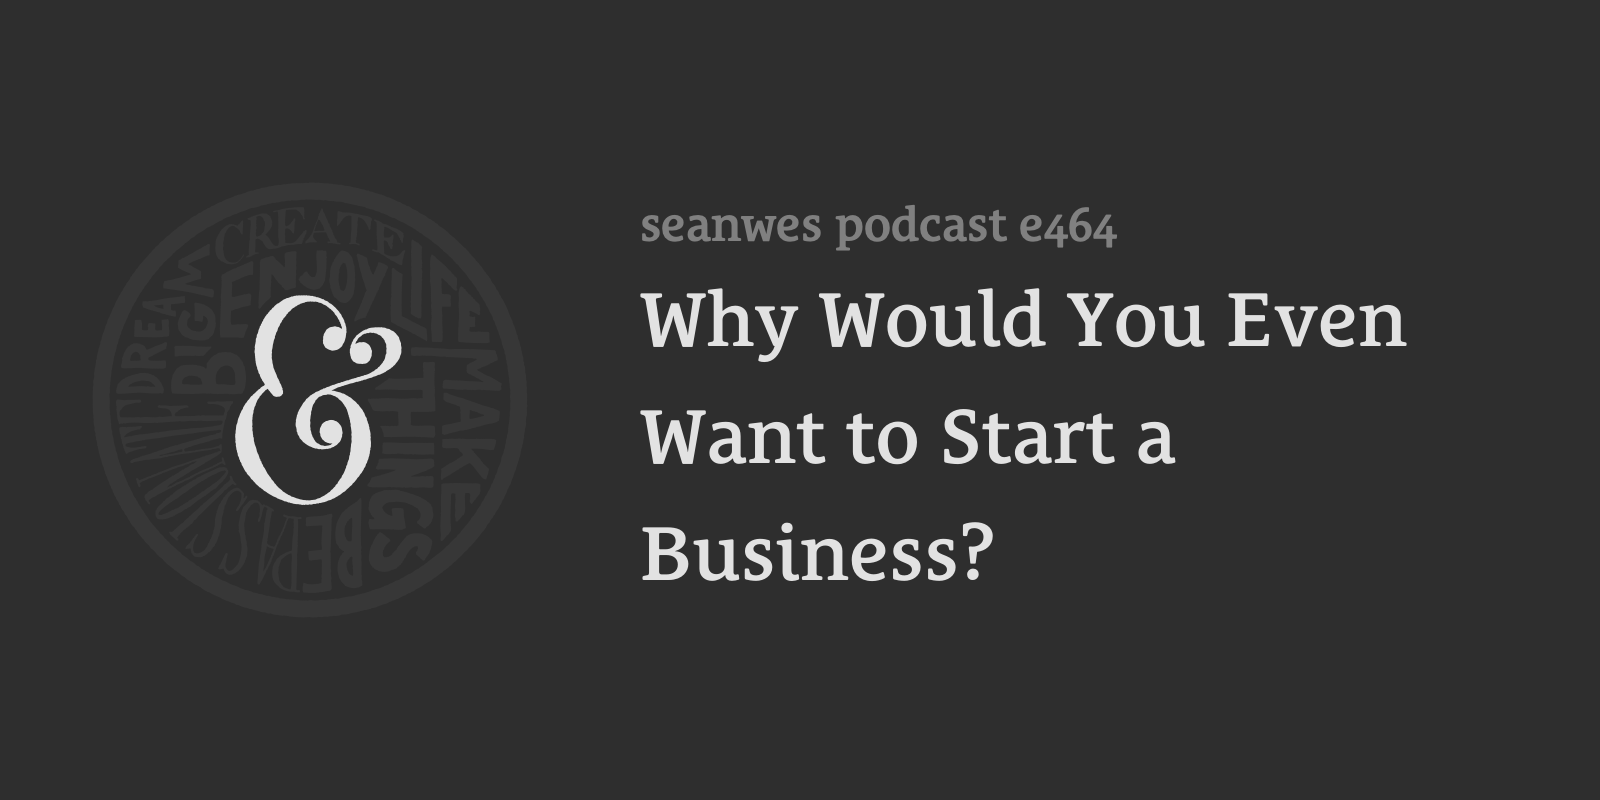 seanwes podcast: Why Would You Even Want to Start a Business?